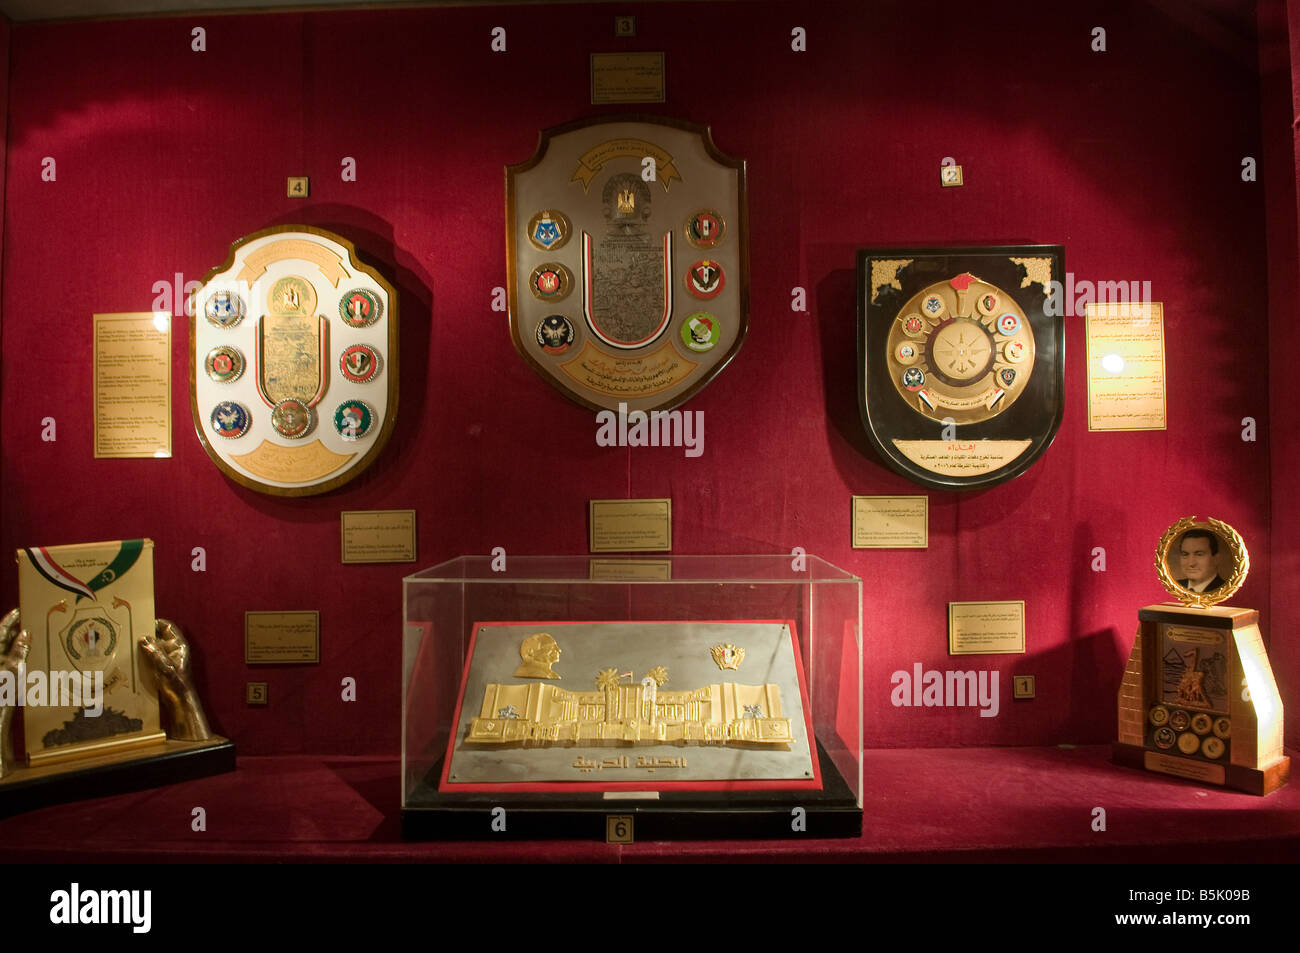 Collection of gifts given to President Mubarak displayed at the gift room in Abdeen Palace Museum, Cairo Egypt - Stock Image